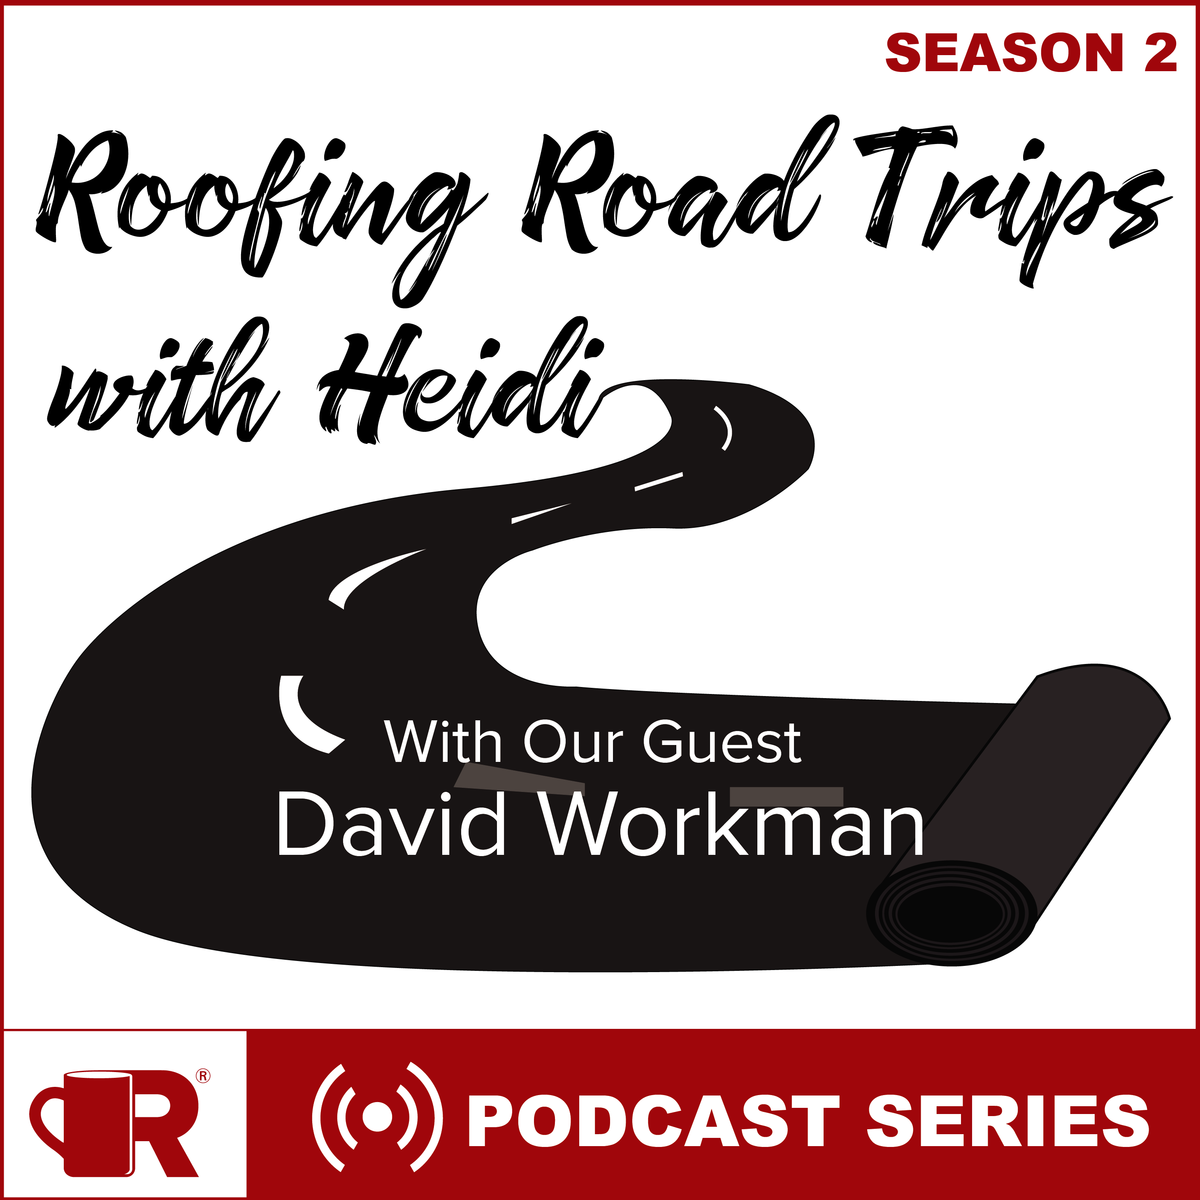 Roofing Road Trip with David Workman